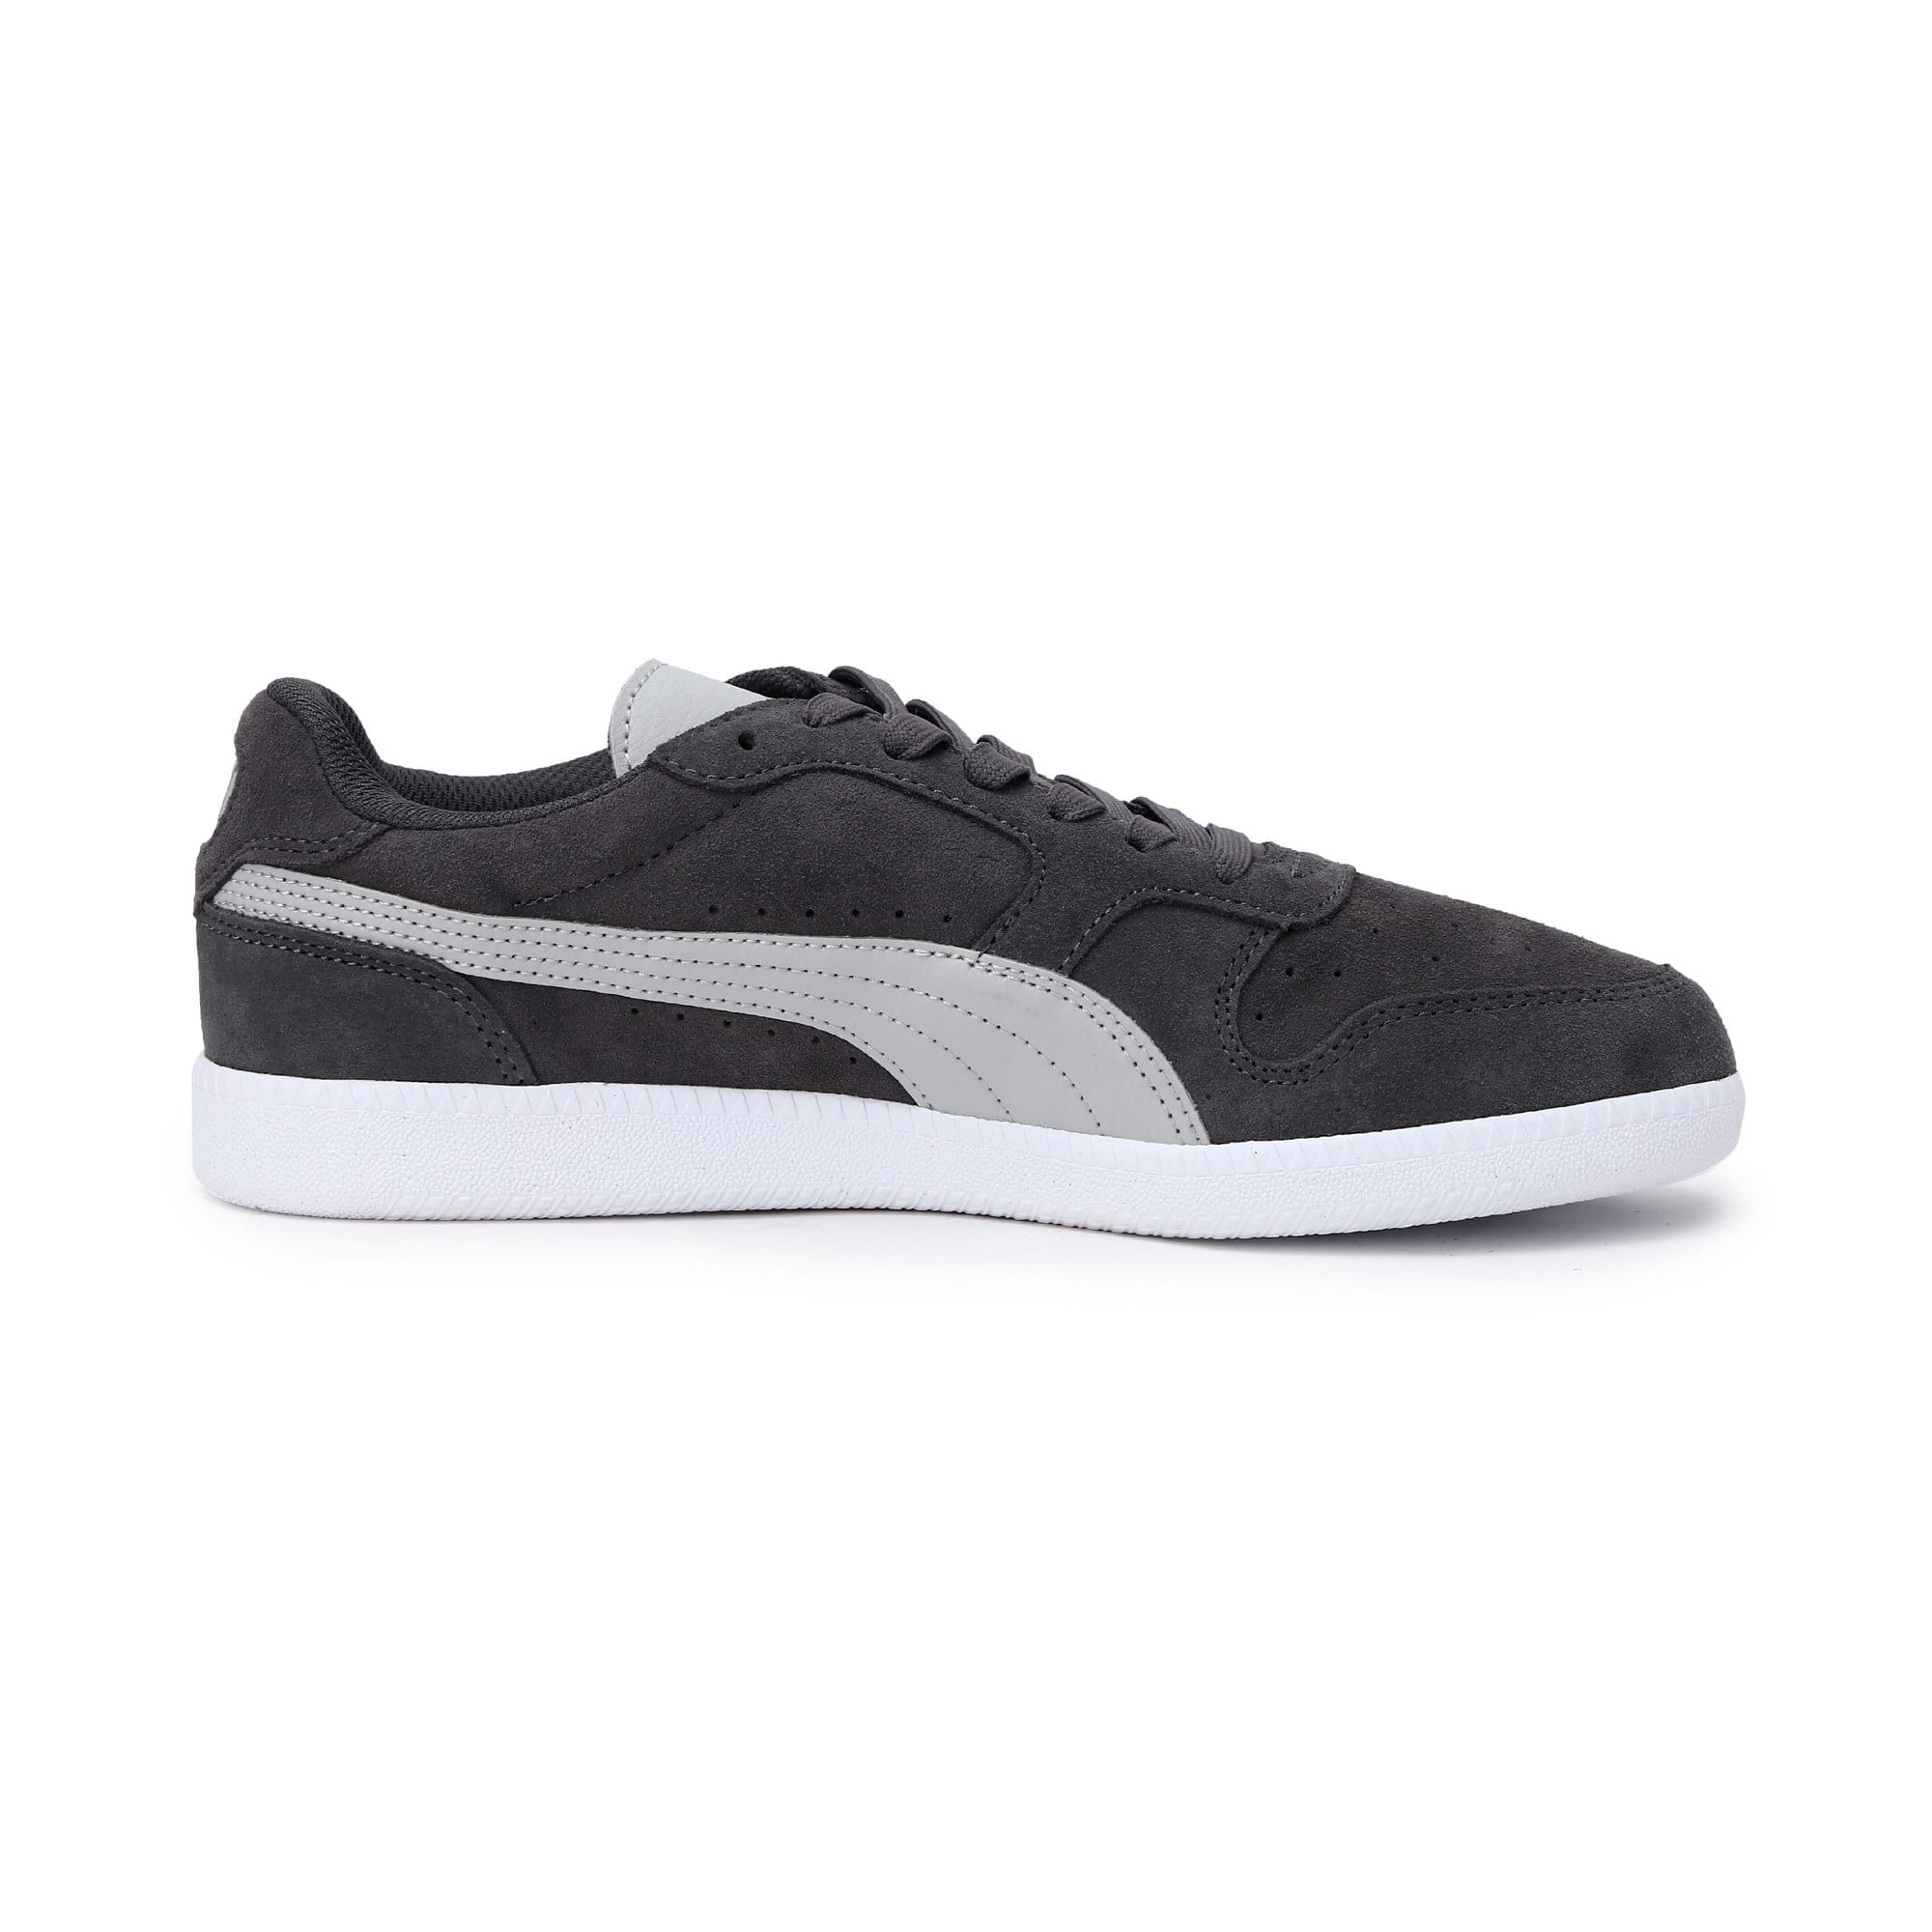 Thumbnail 6 of Icra Suede Trainers, CASTLEROCK-High Rise-White, medium-IND